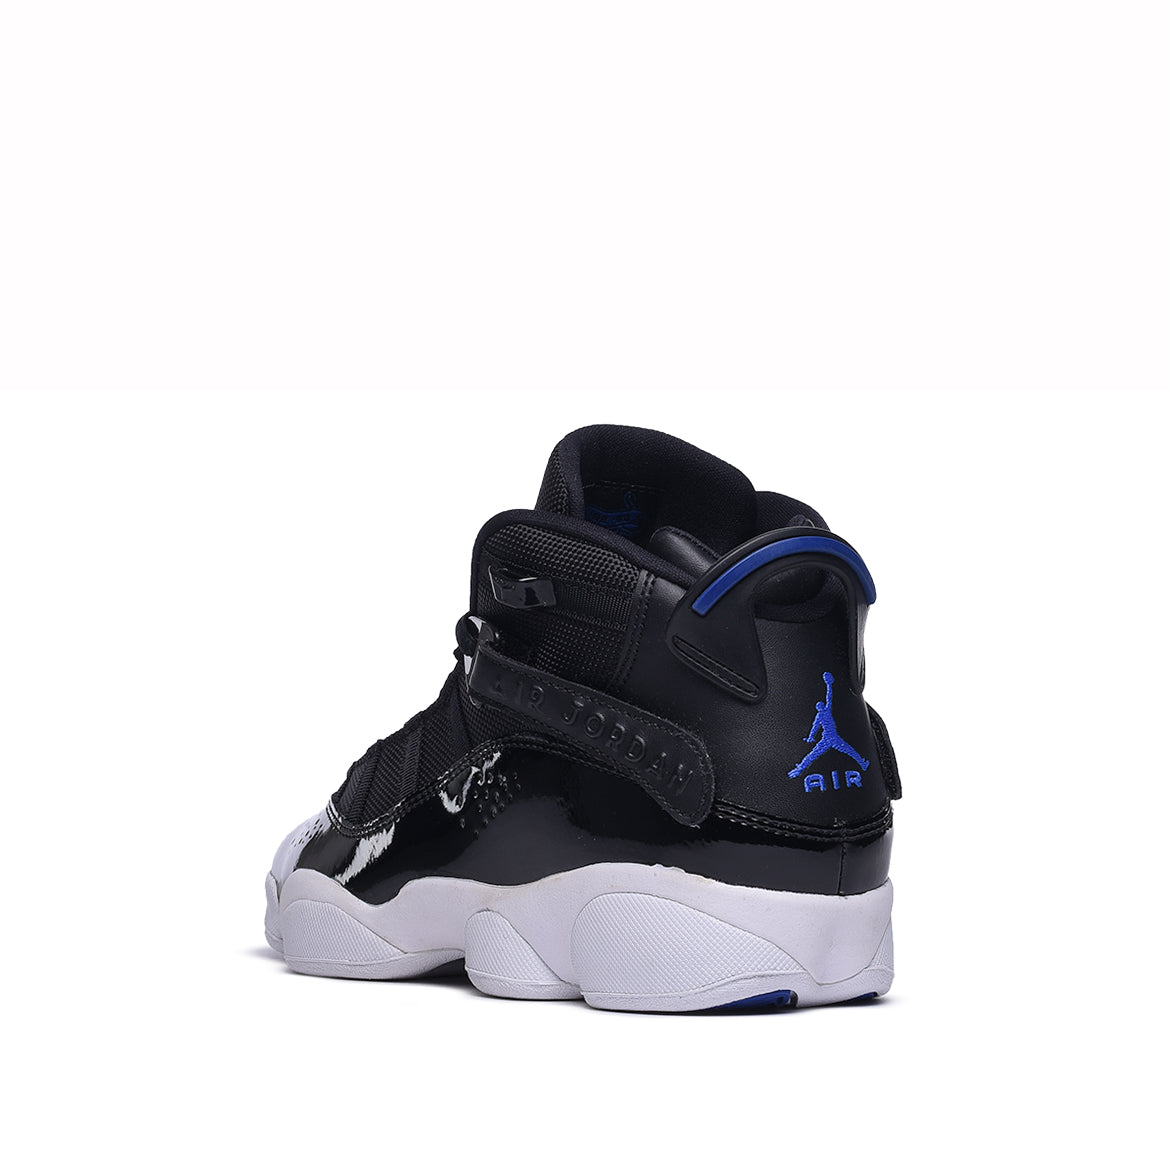 JORDAN 6 RINGS (GS) - BLACK / HYPER ROYAL / WHITE